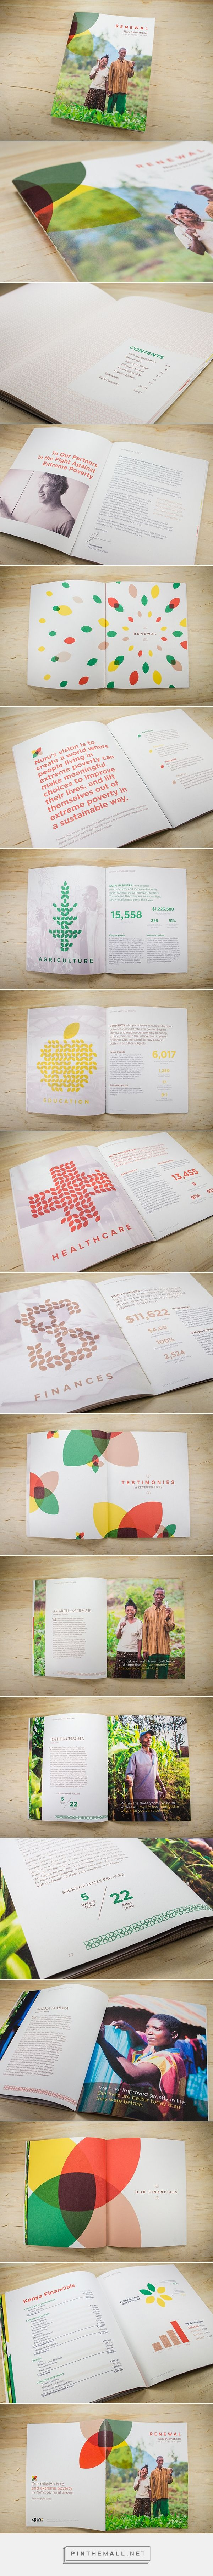 Nuru International Annual Report on Behance